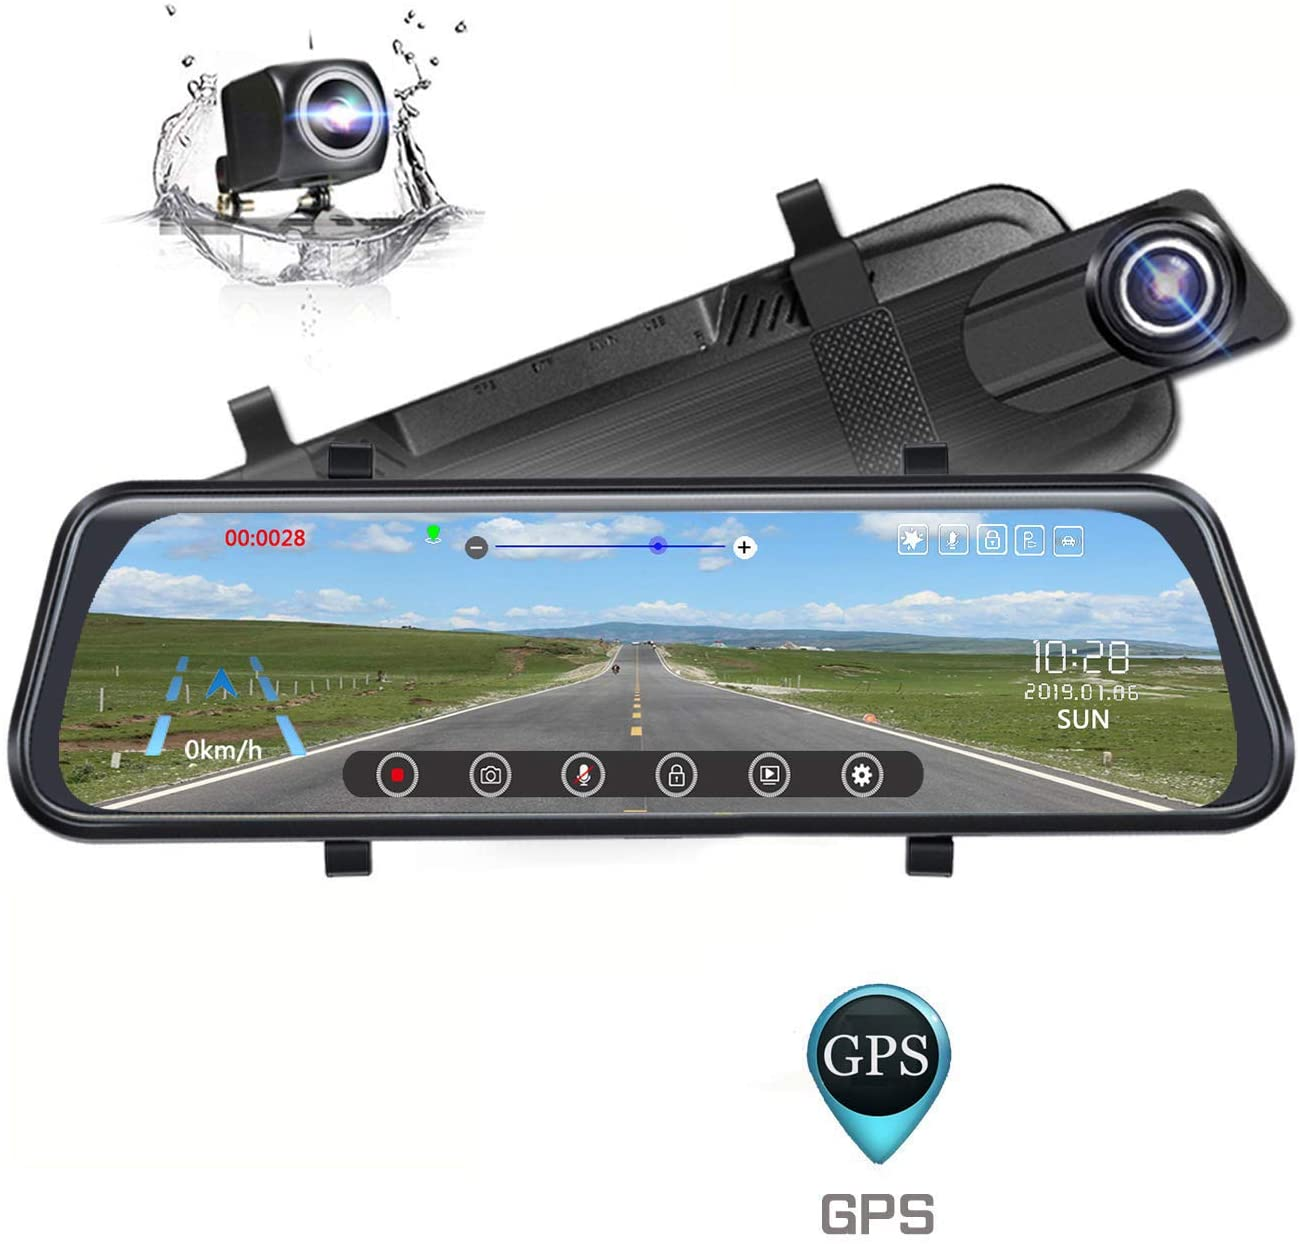 Mirror Dash Cam, Poaeaon Backup Camera 10inch Car Dash Camera Touch Screen, 170°1296P Front and 150° 1080P Rear View Camera Dual Lens with G-Sensor, 24 Hour Parking, GPS